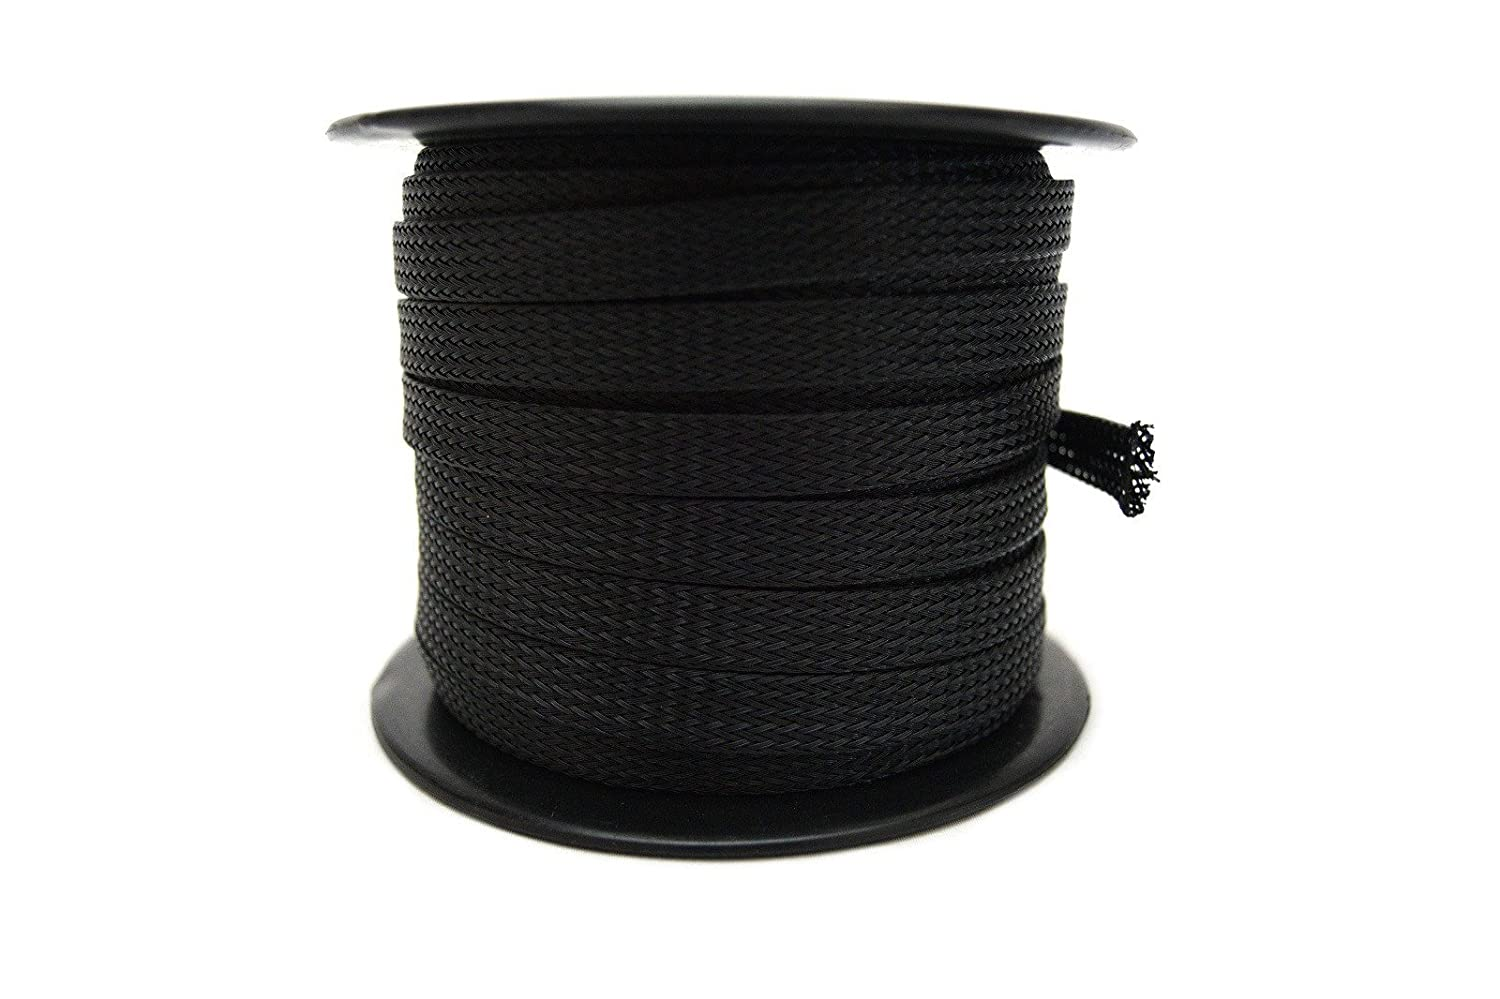 Wire Harness Sleeve Wiring Library Braided Amazoncom Black 3 8 100ft Expandable Flex Loom